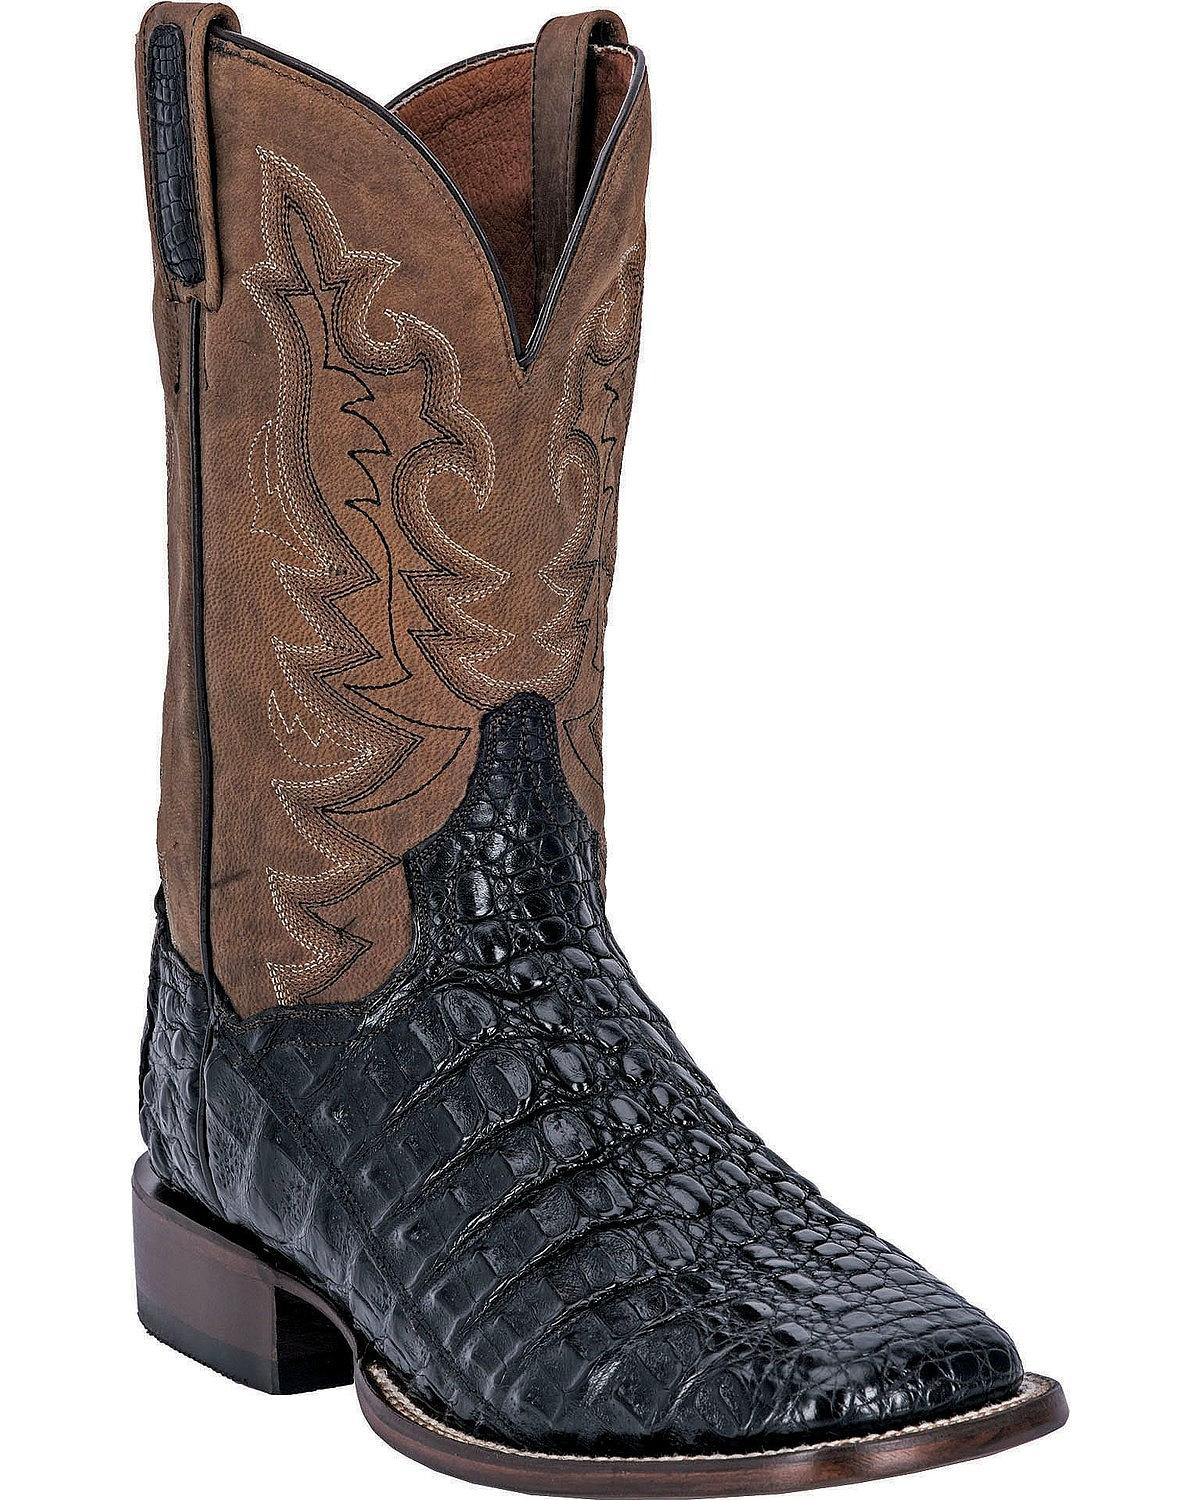 Dan Post Men's Caiman Foot Leather Cowboy Boot Square Toe